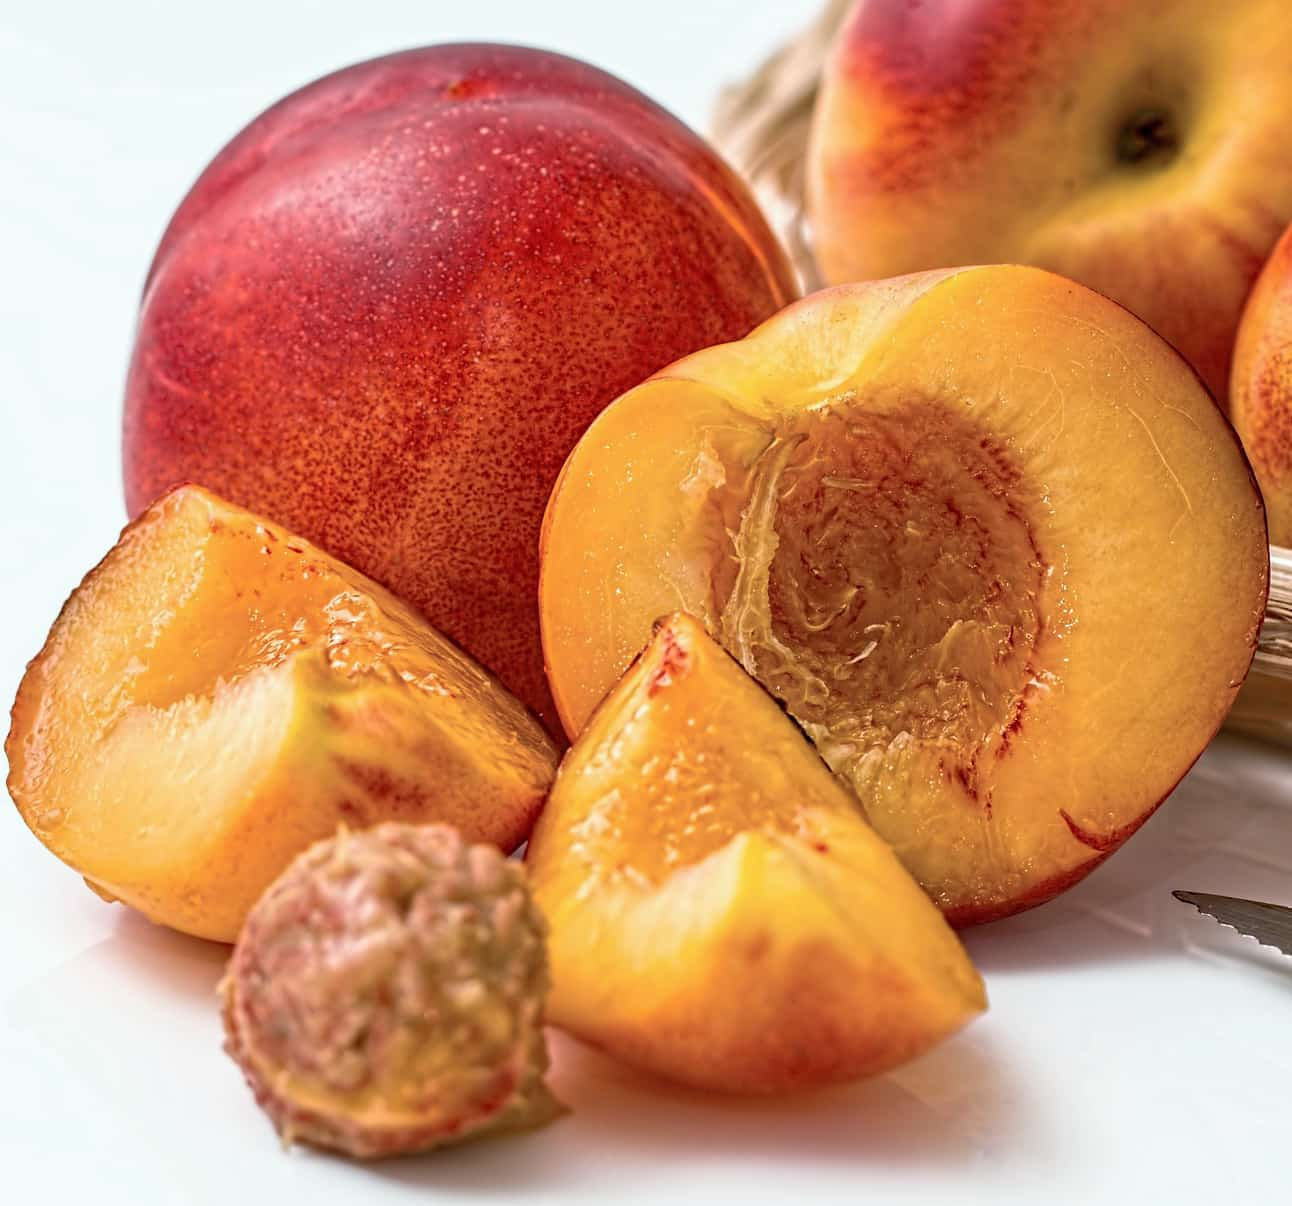 image of nectarine